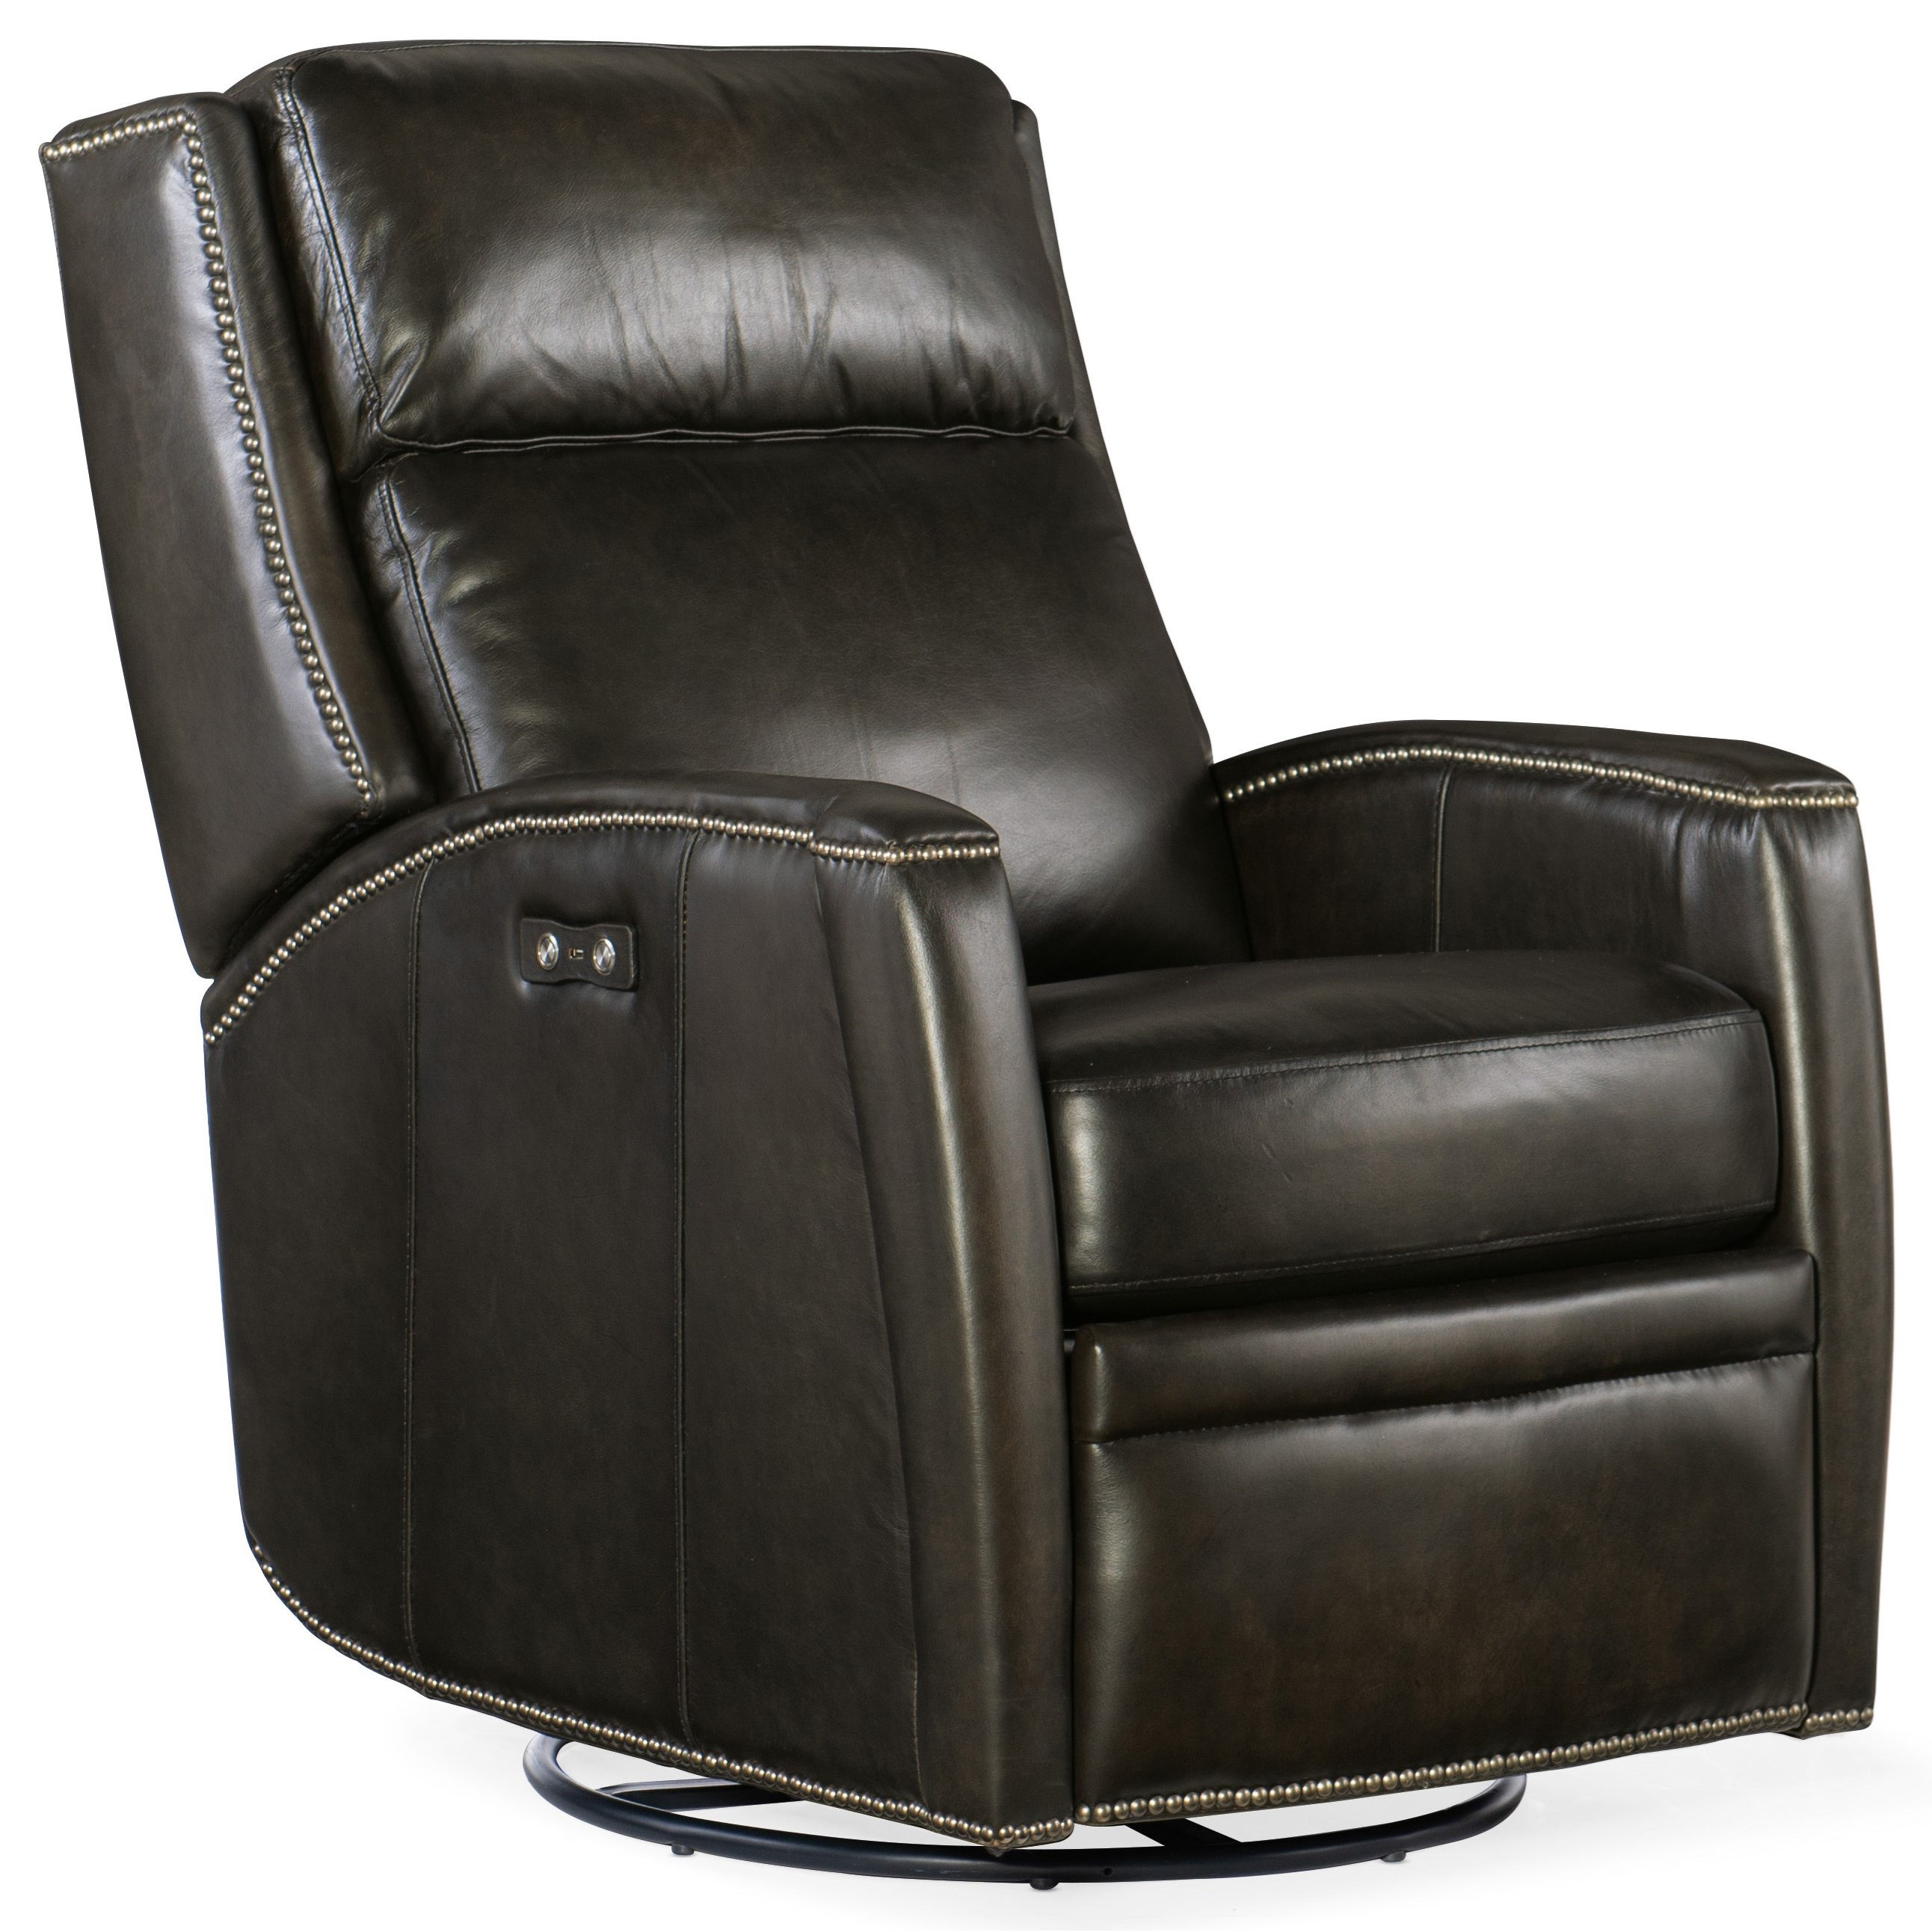 Declan Power Swivel Glider Recliner by Hooker Furniture at Johnny Janosik